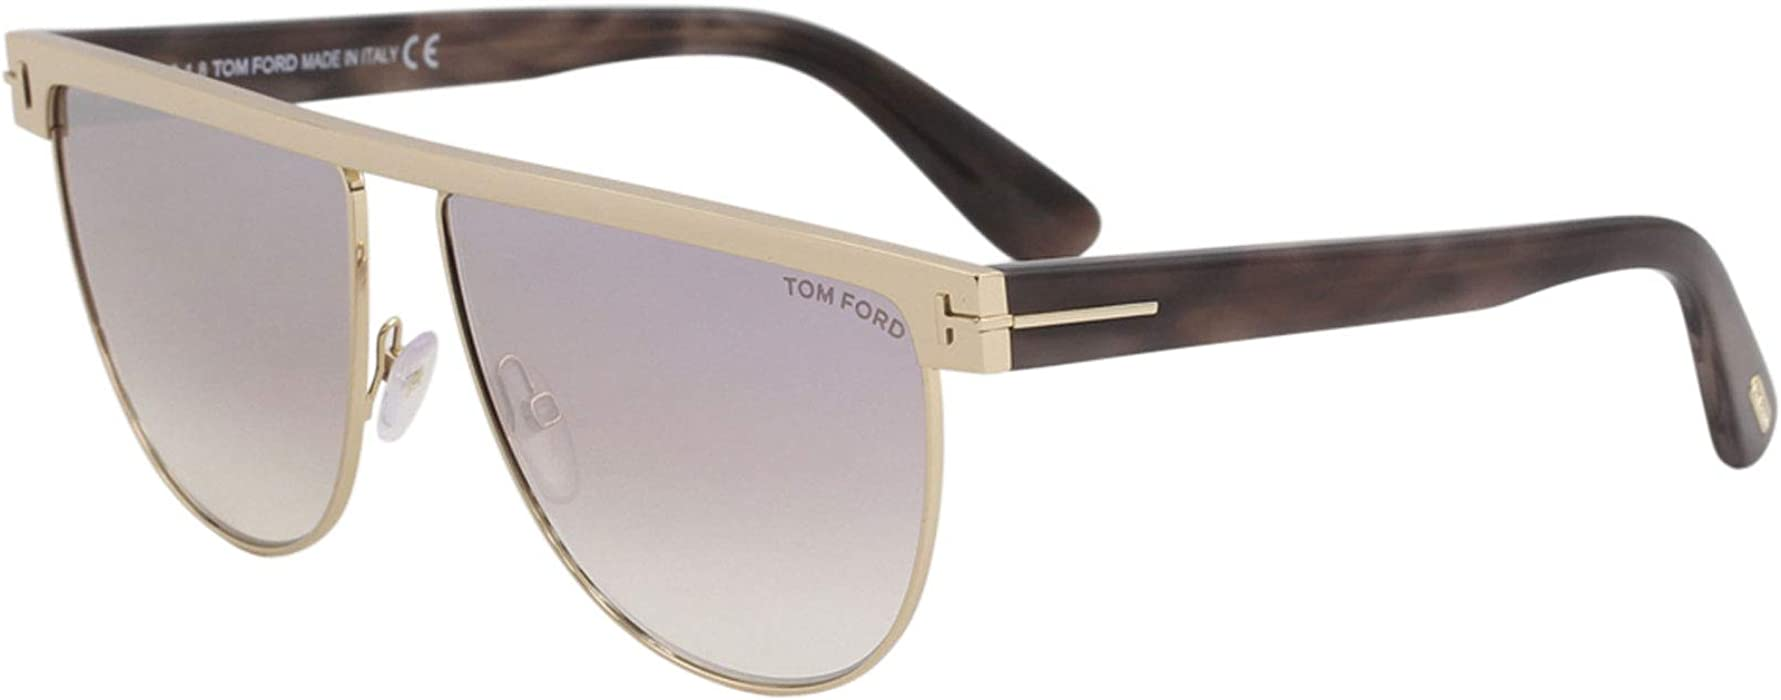 cd037e41146bd Sunglasses Tom Ford FT 0570 Stephanie- 02 28Z shiny rose gold   gradient at  Amazon Men s Clothing store